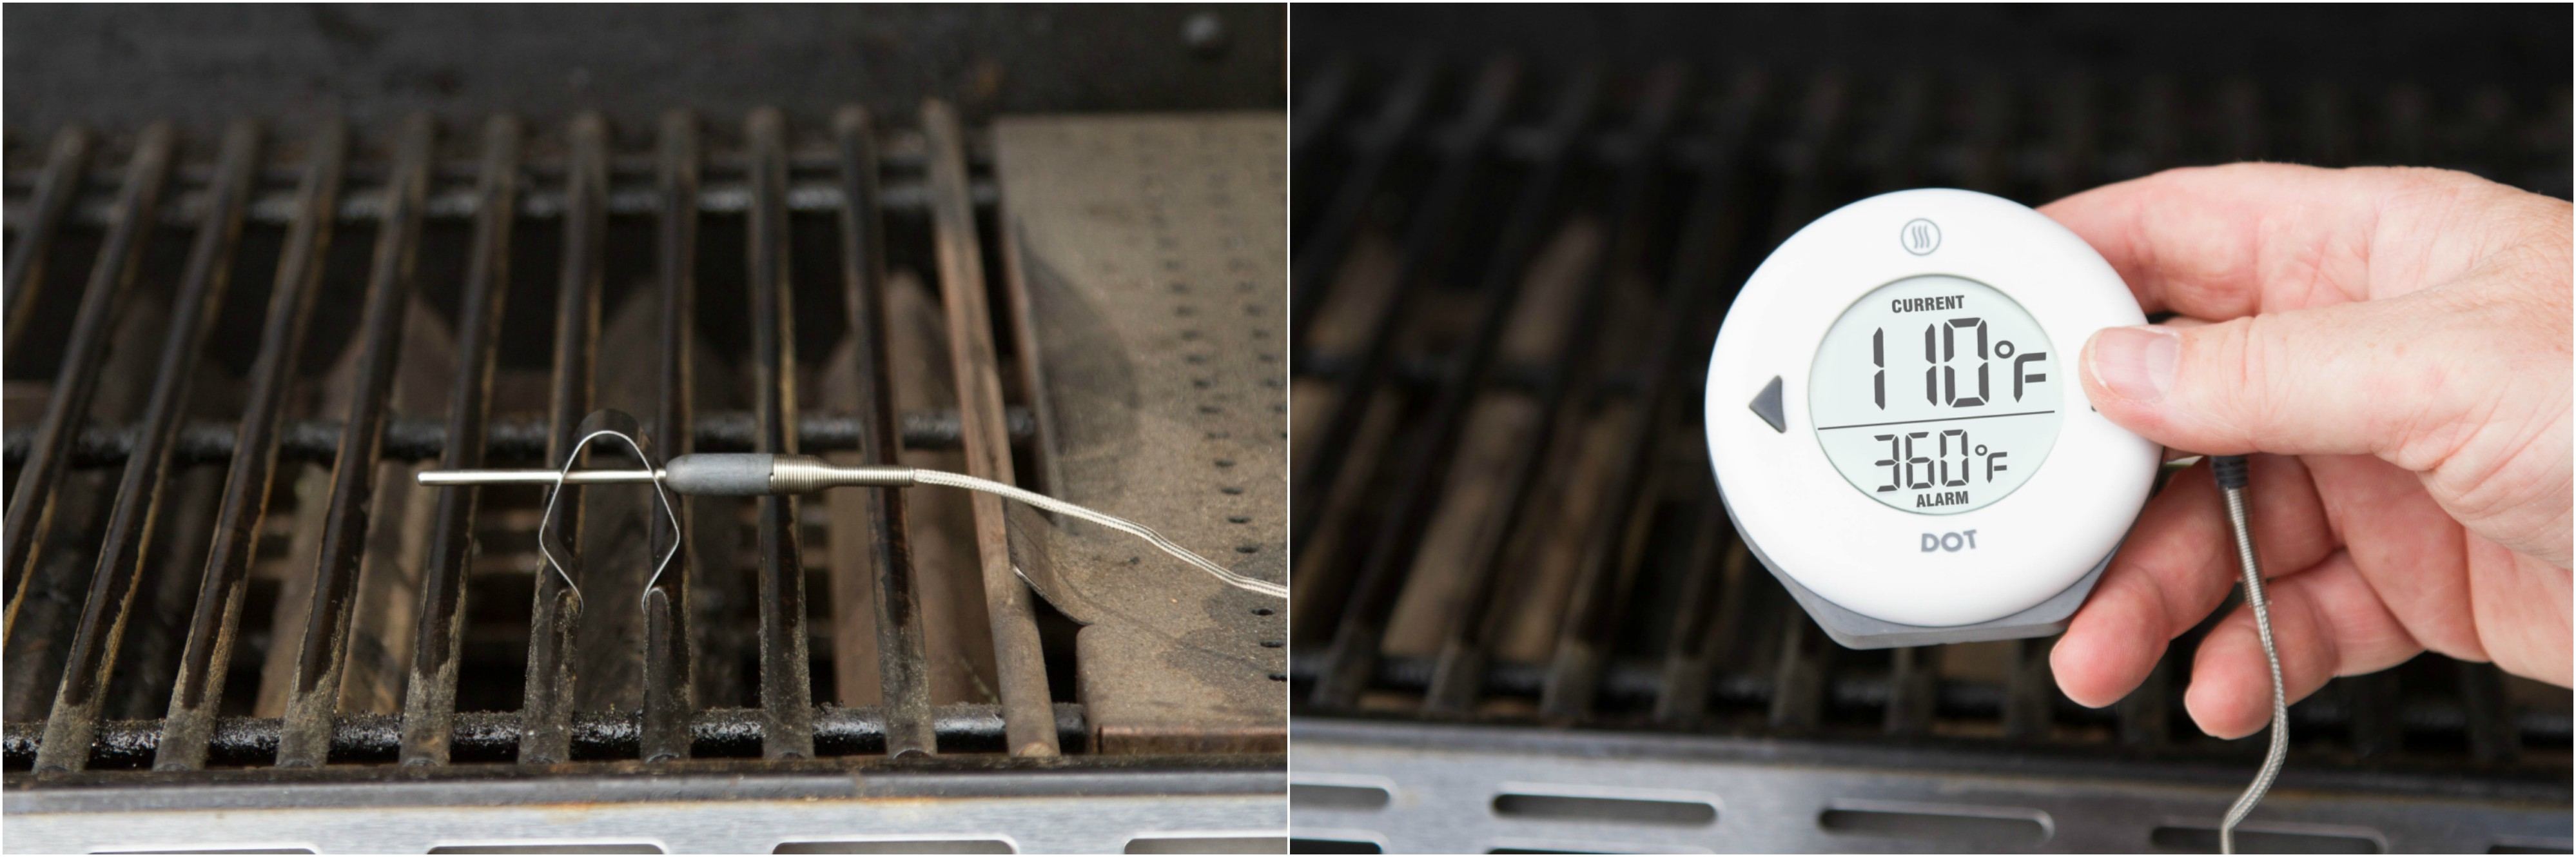 Pro-Series Air Probe on grill grate, setting high alarm on DOT thermometer